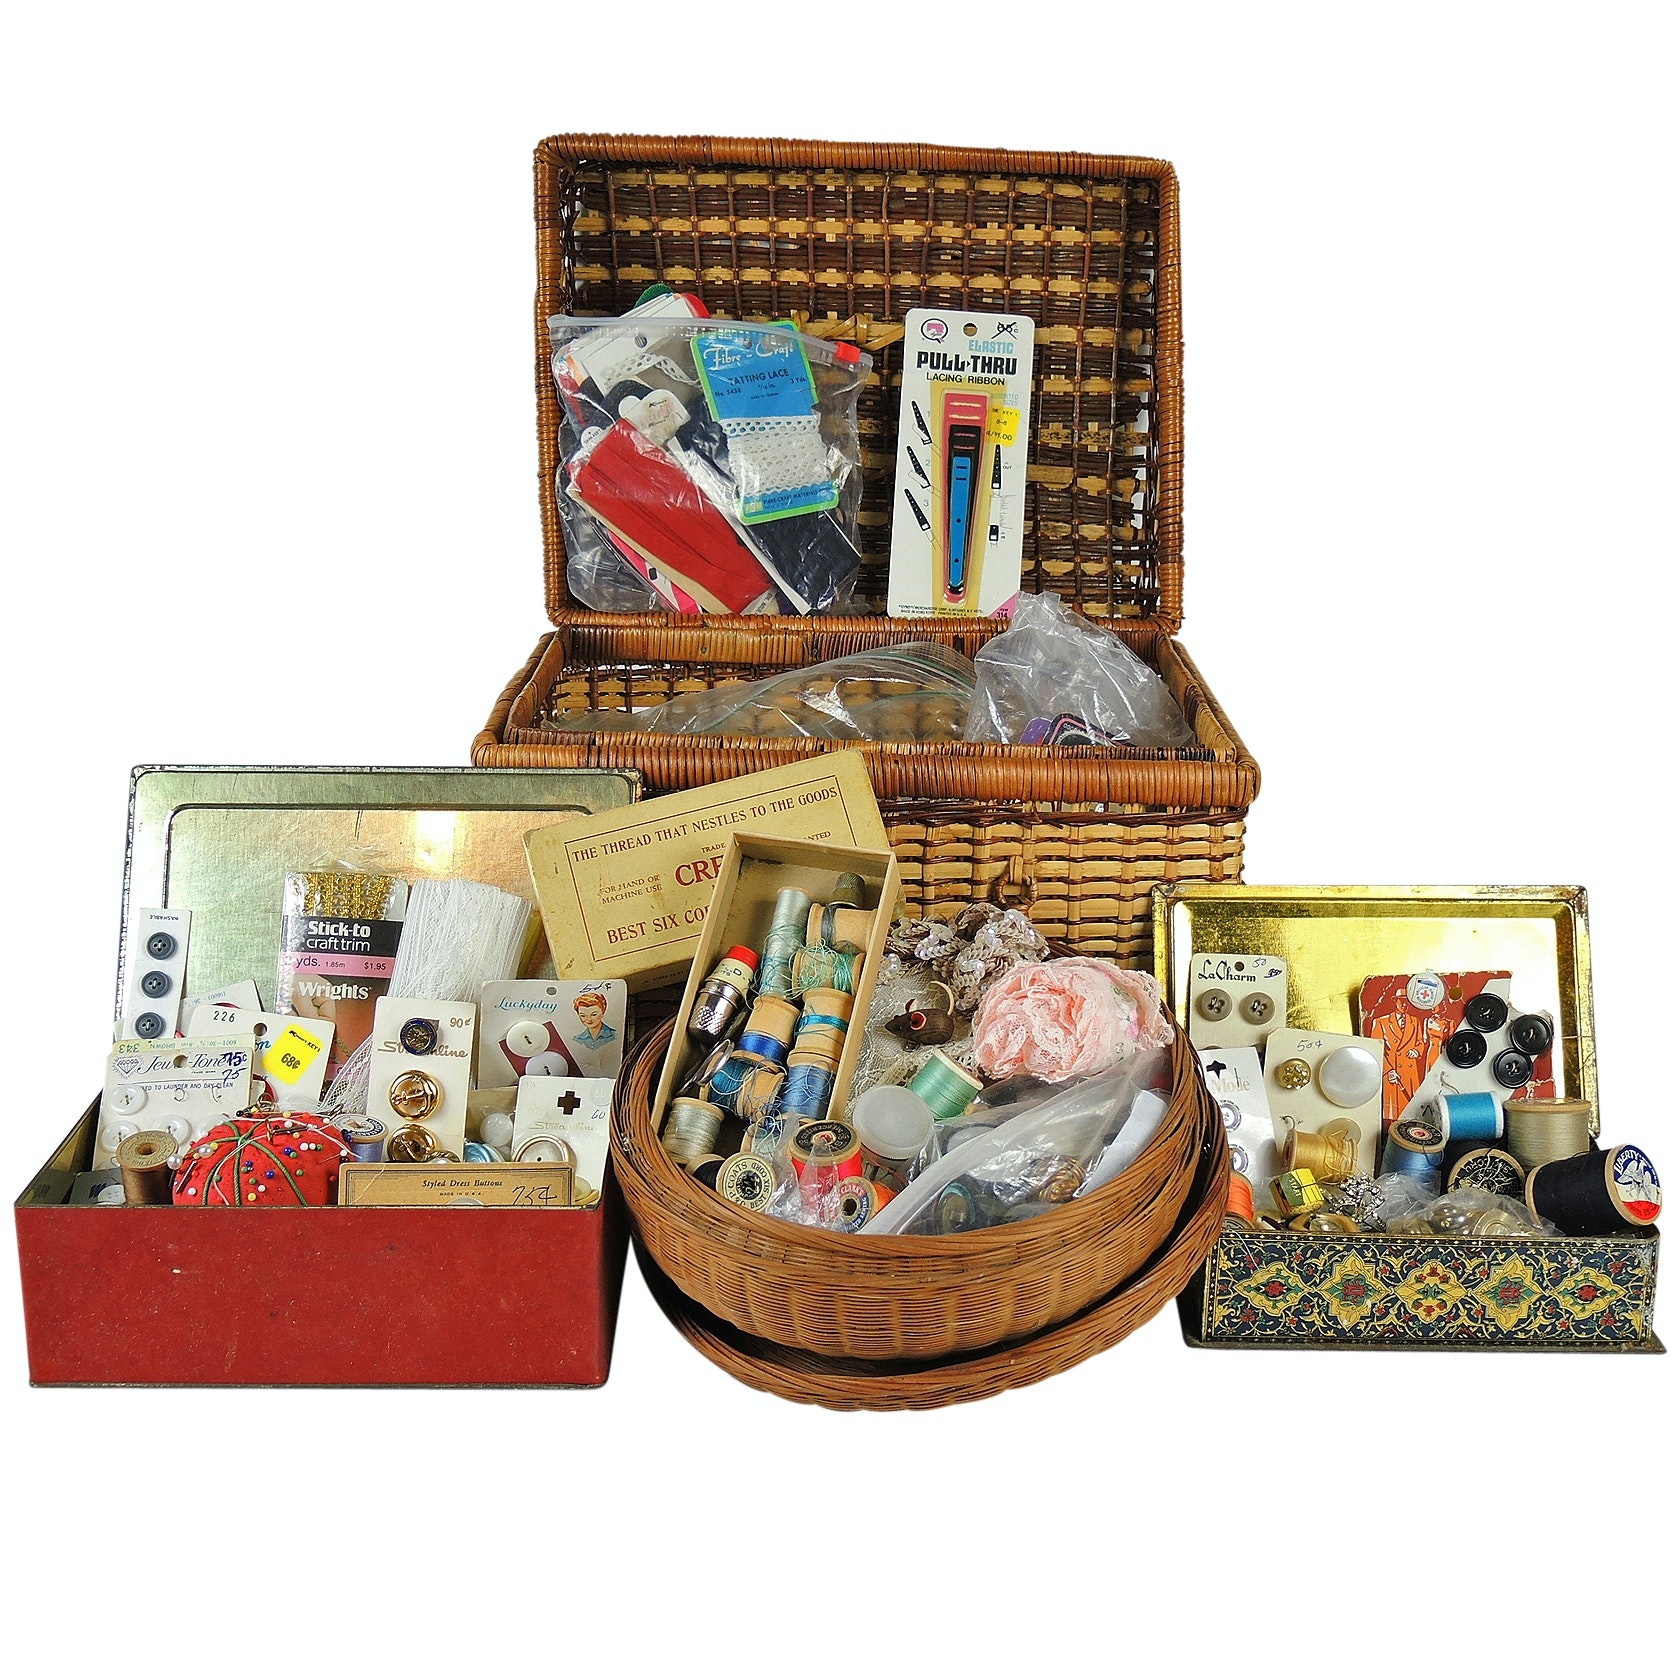 Vintage Sewing Notions and Sewing Baskets